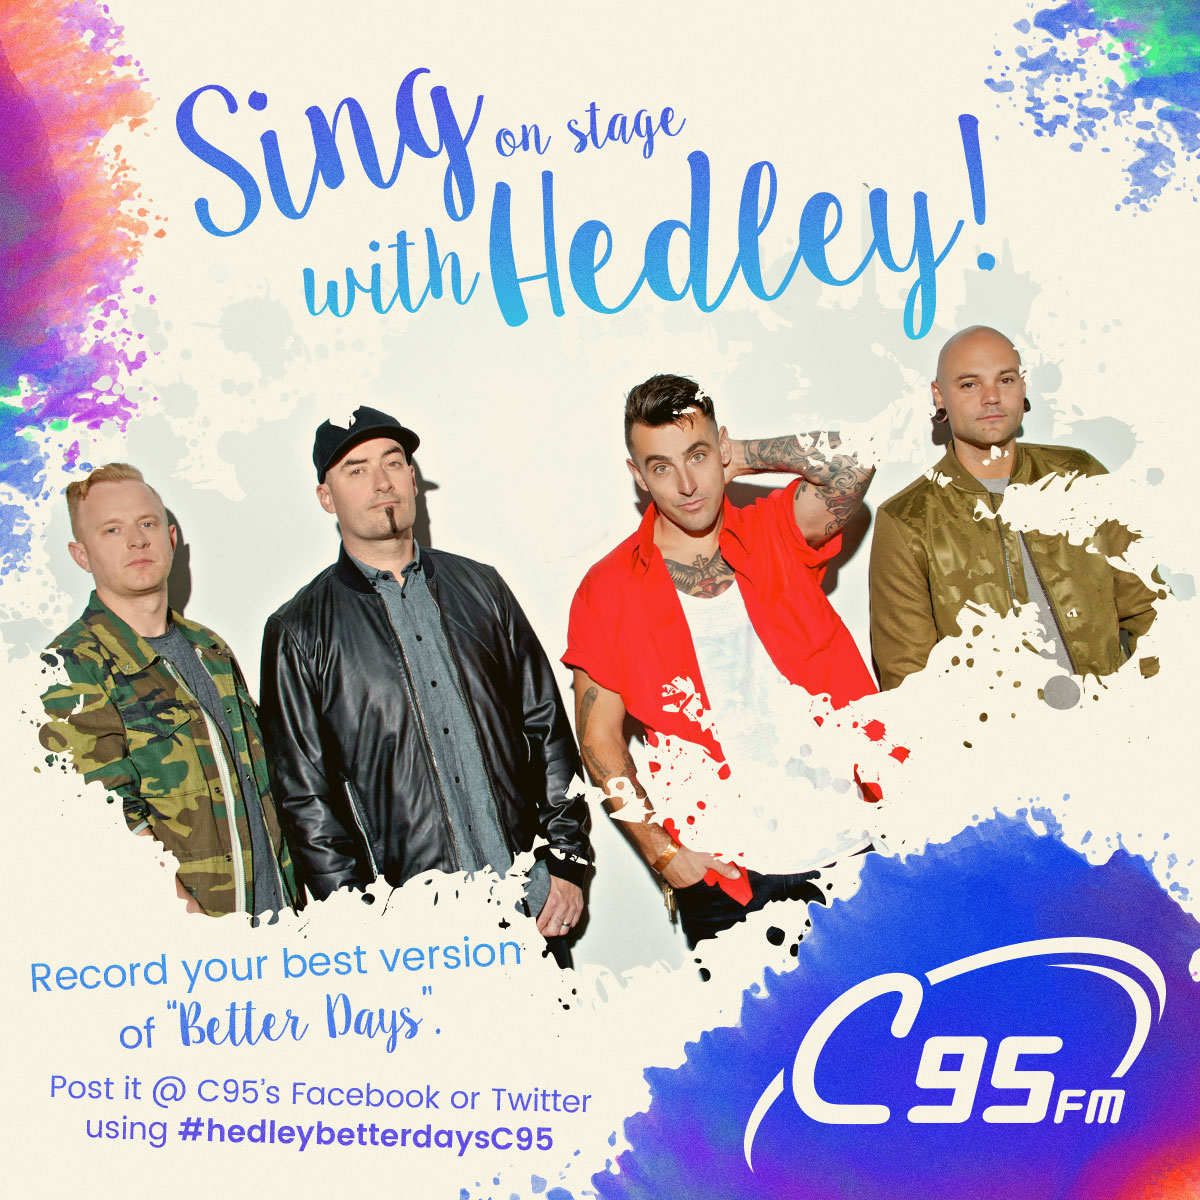 Sing a Duet on Stage with Hedley